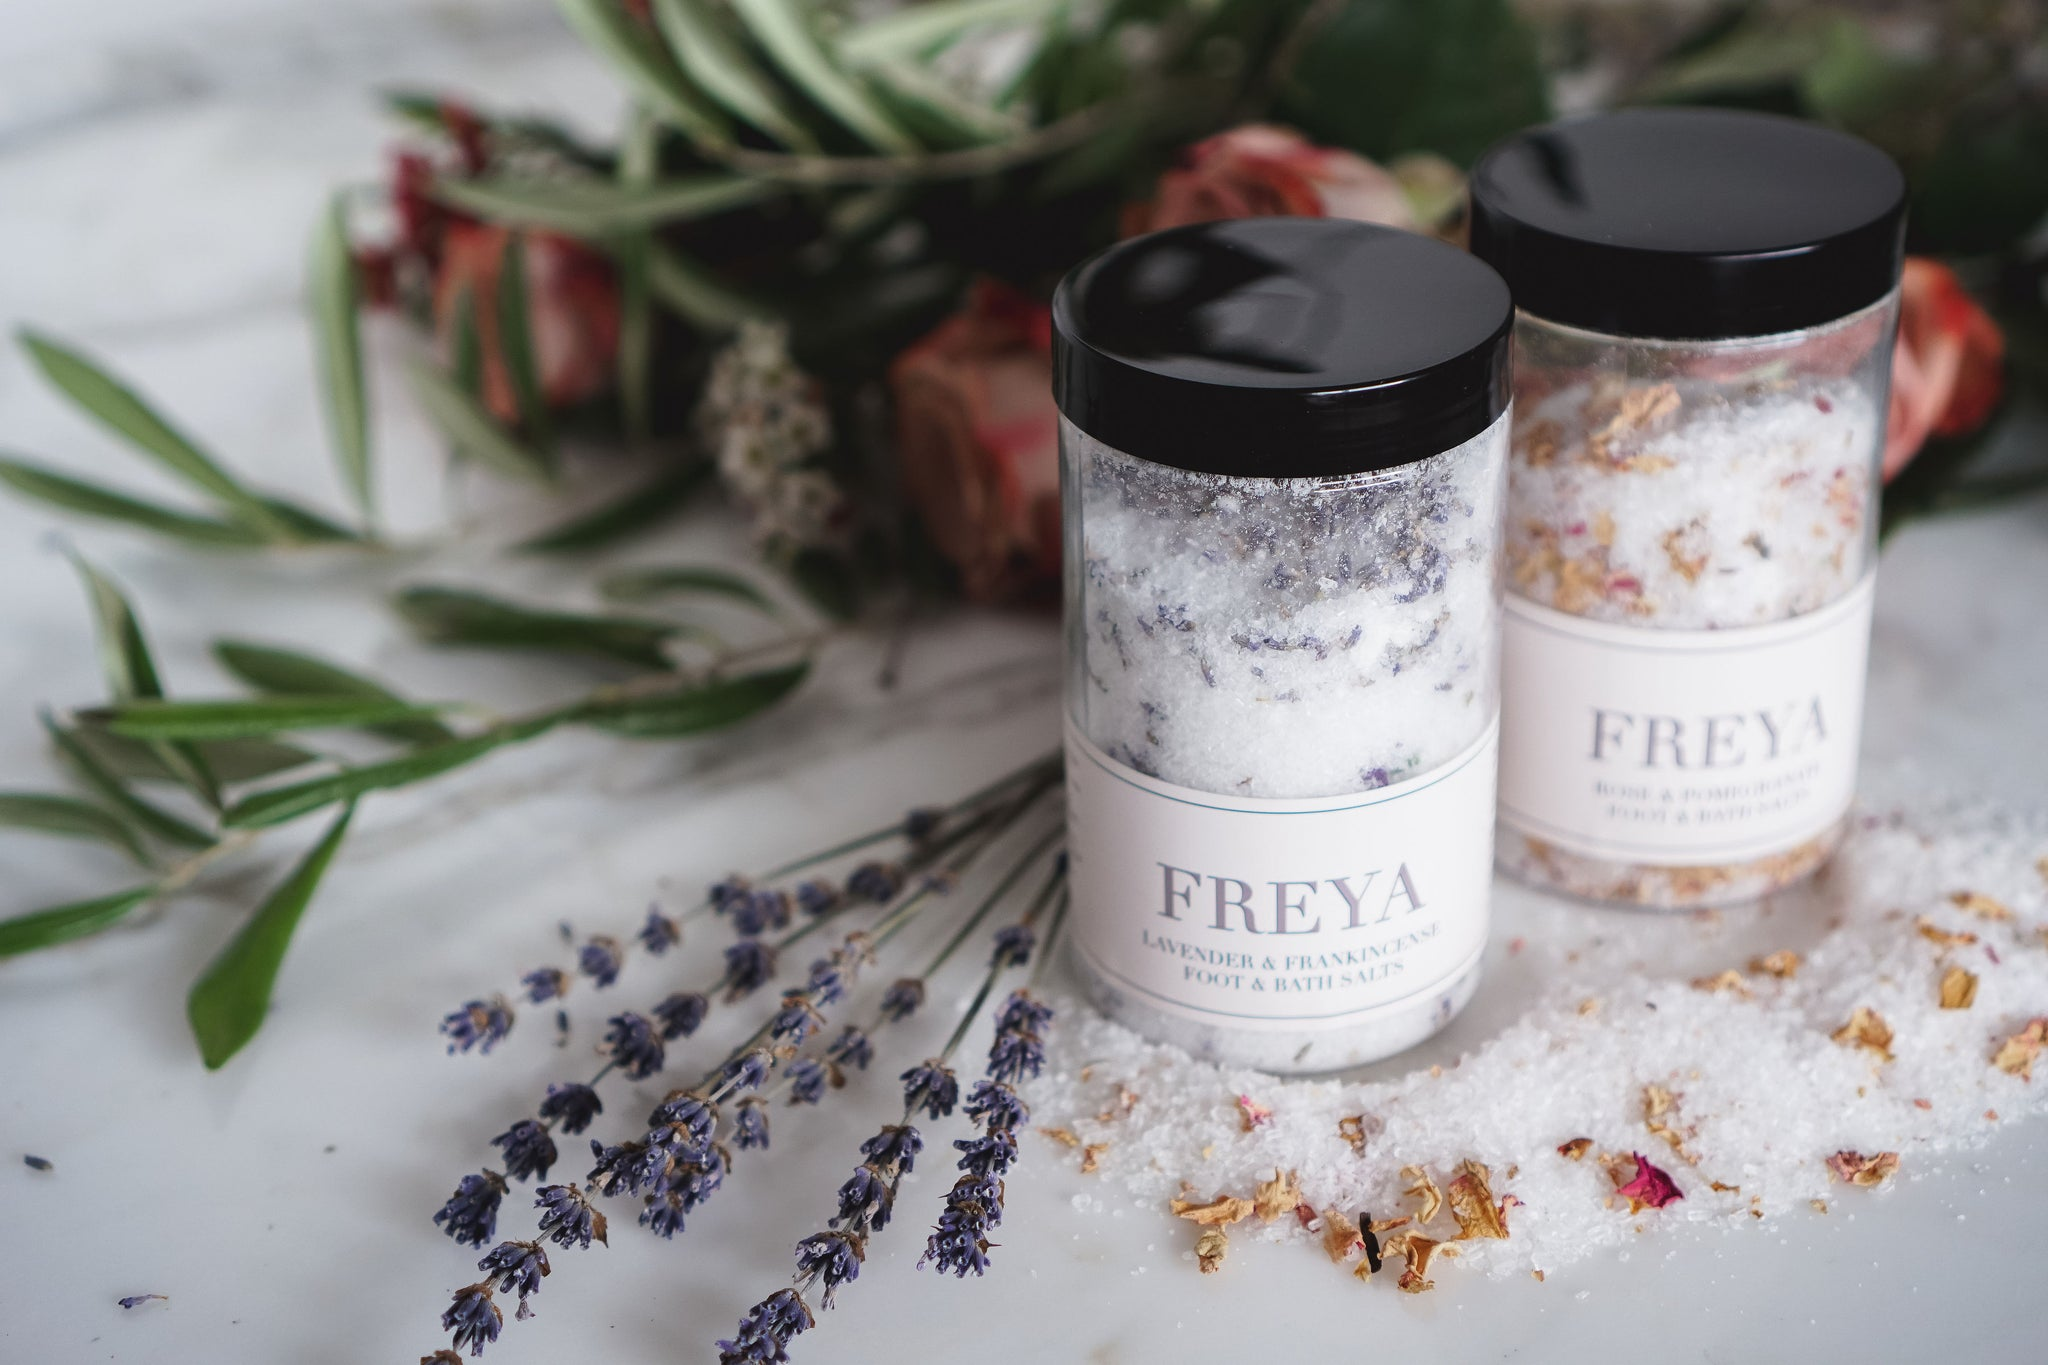 Self Care Toolkit - Freya's Nourishment